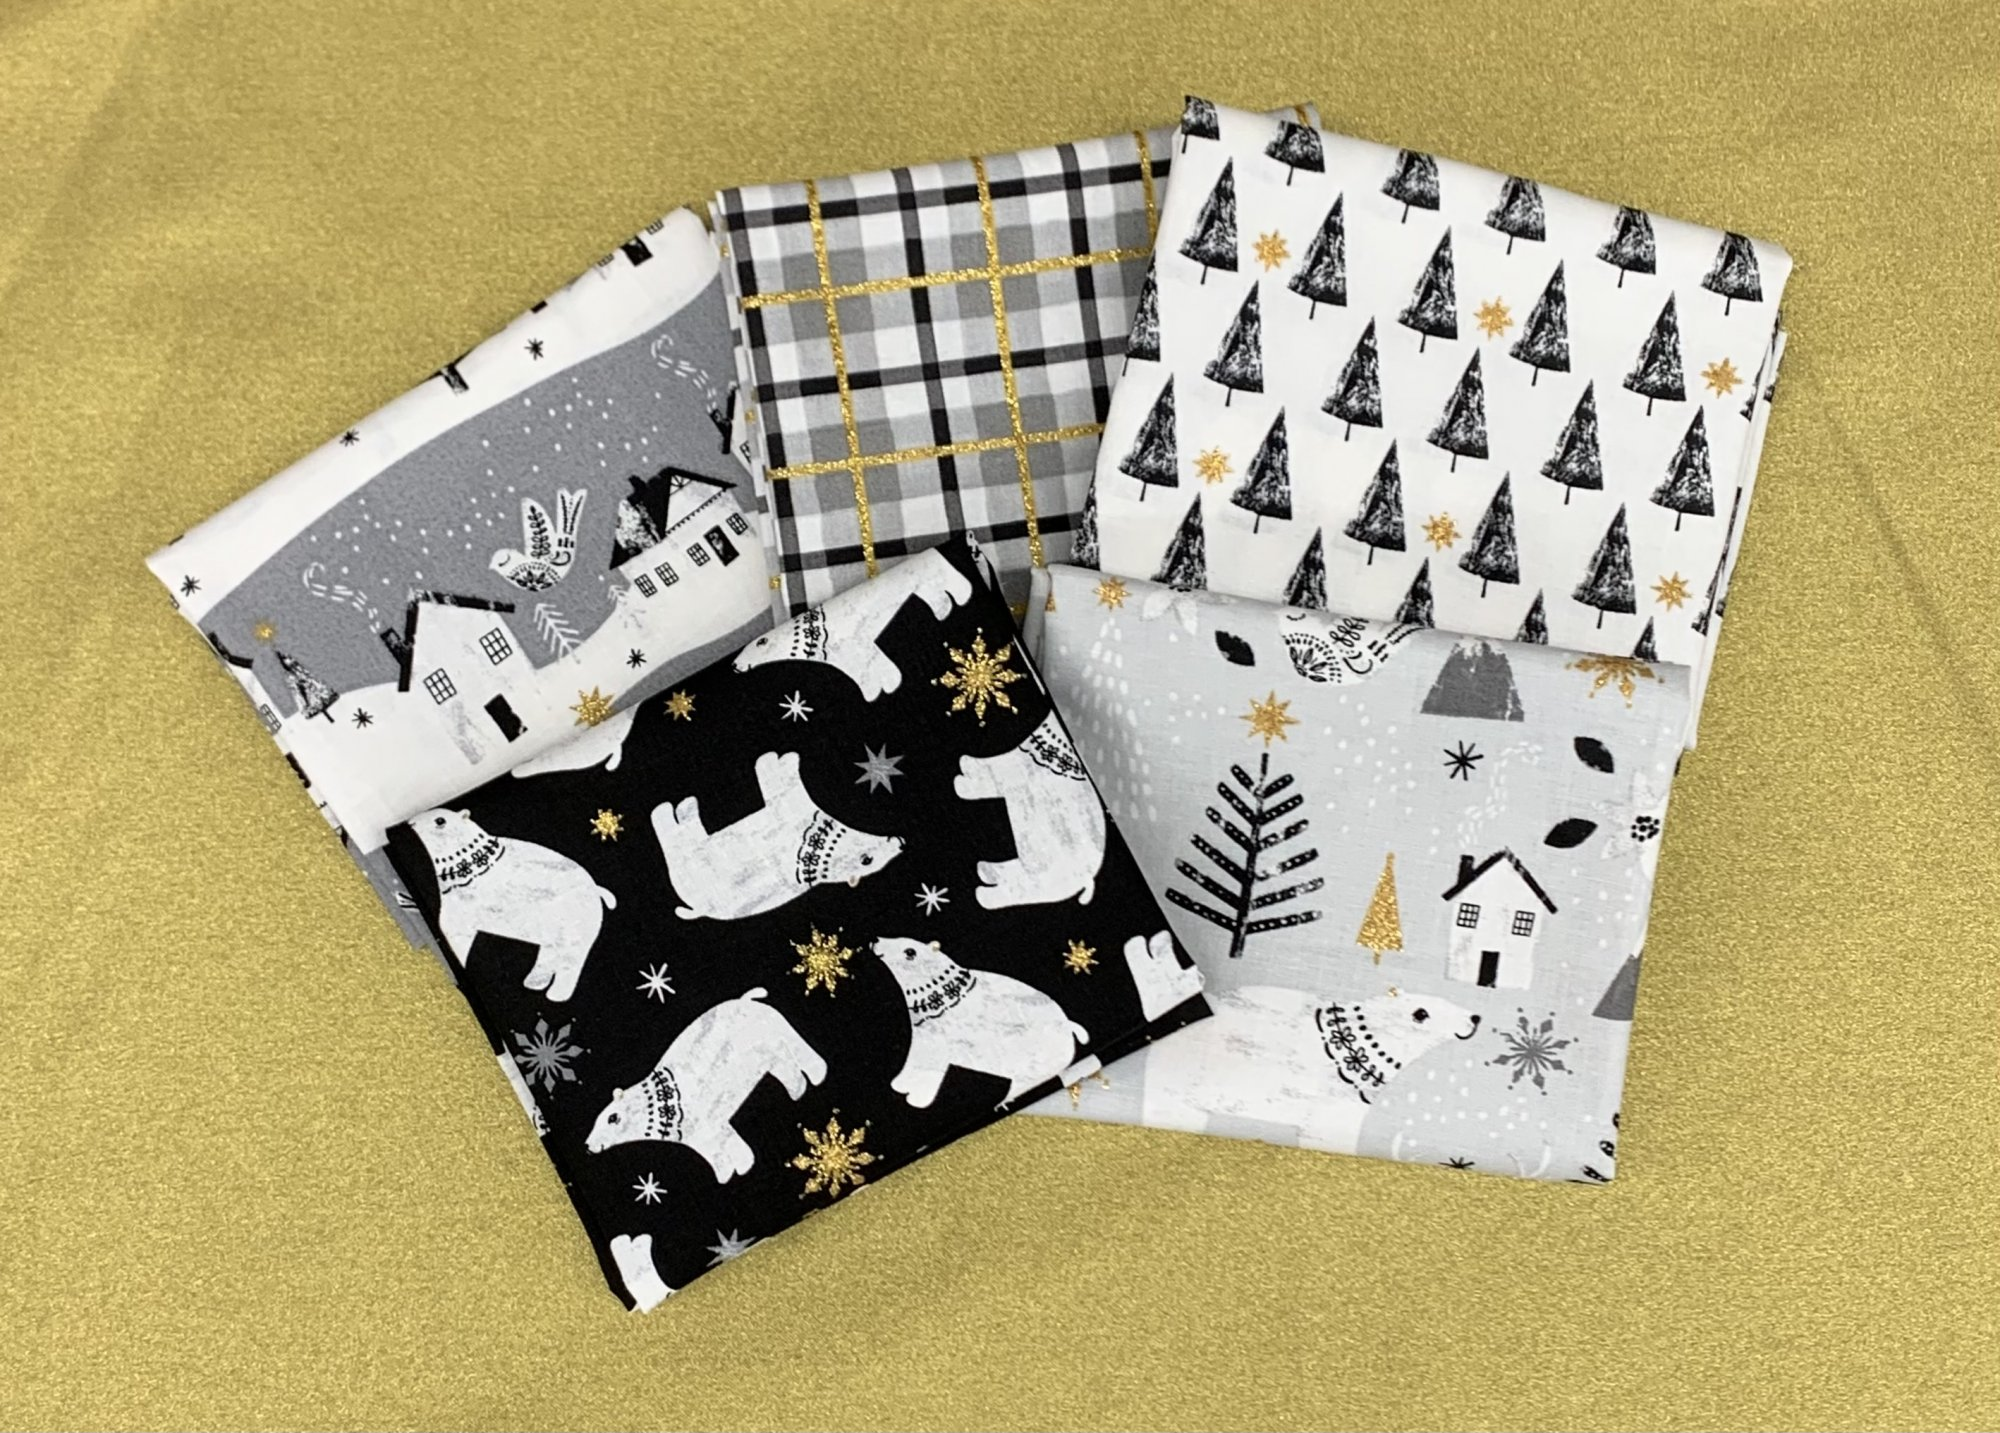 3 Wishes Peace on Earth 5pc Fat Quarter Bundle